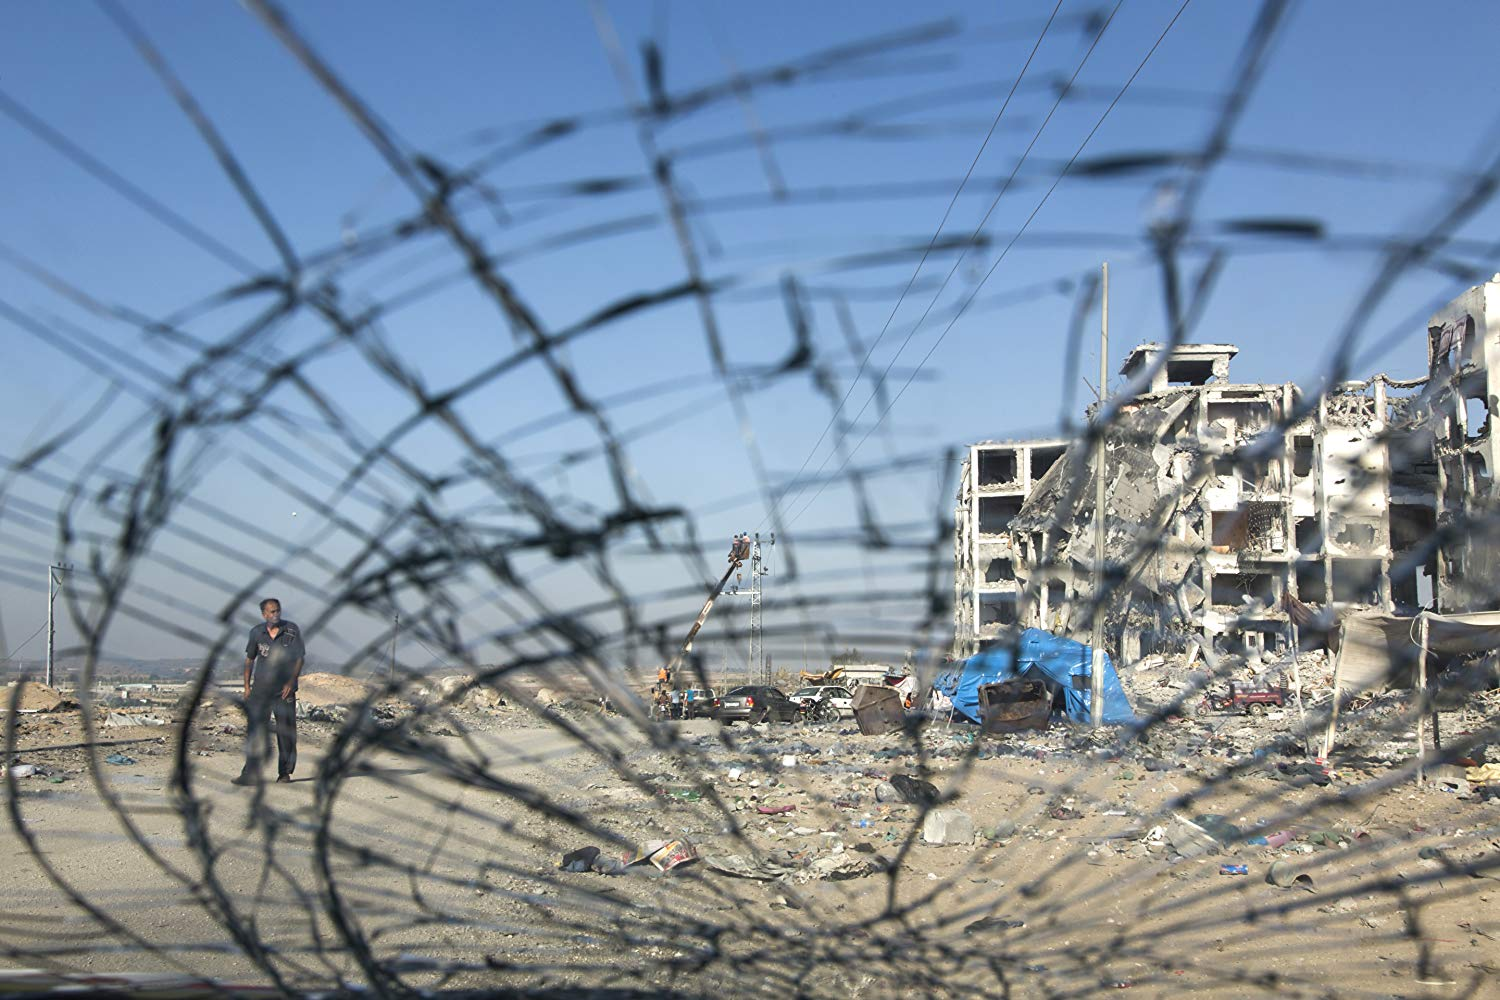 Gaza Film C: Andrew McConnell/Panos